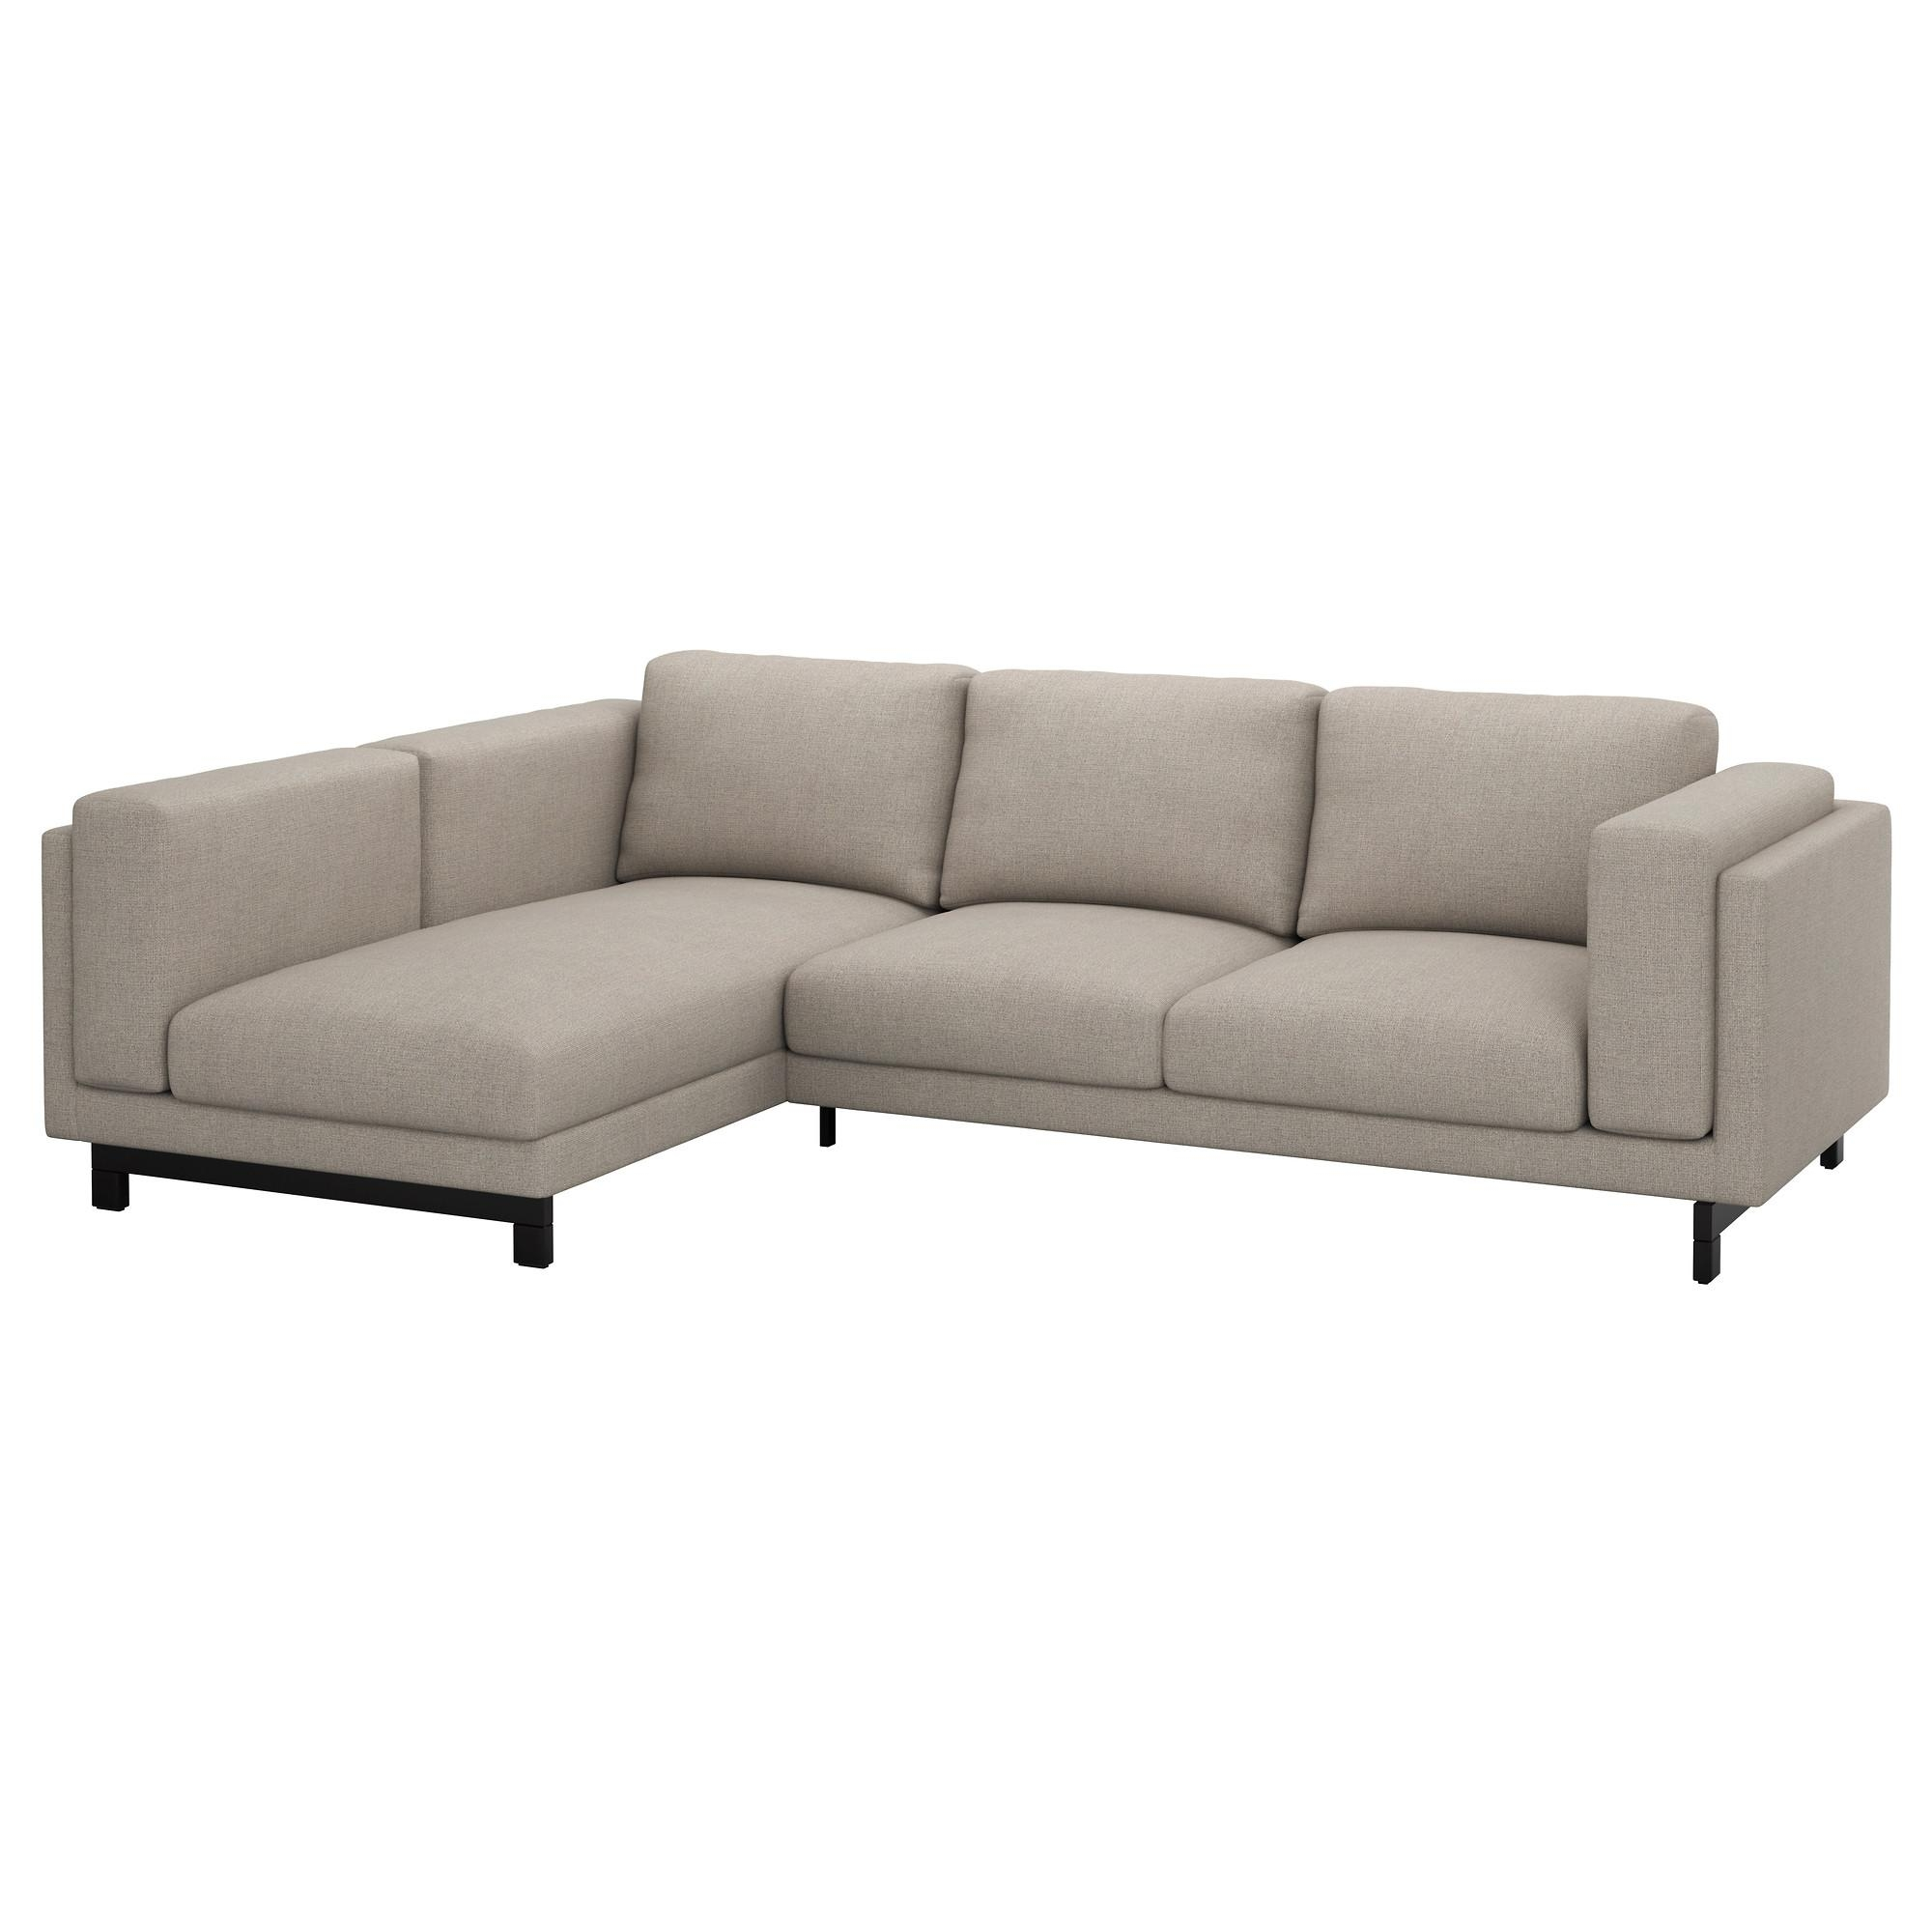 Nockeby Two-Seat Sofa W Chaise Longue Left Tenö Light Grey/wood - Ikea throughout Ikea Two Seater Sofas